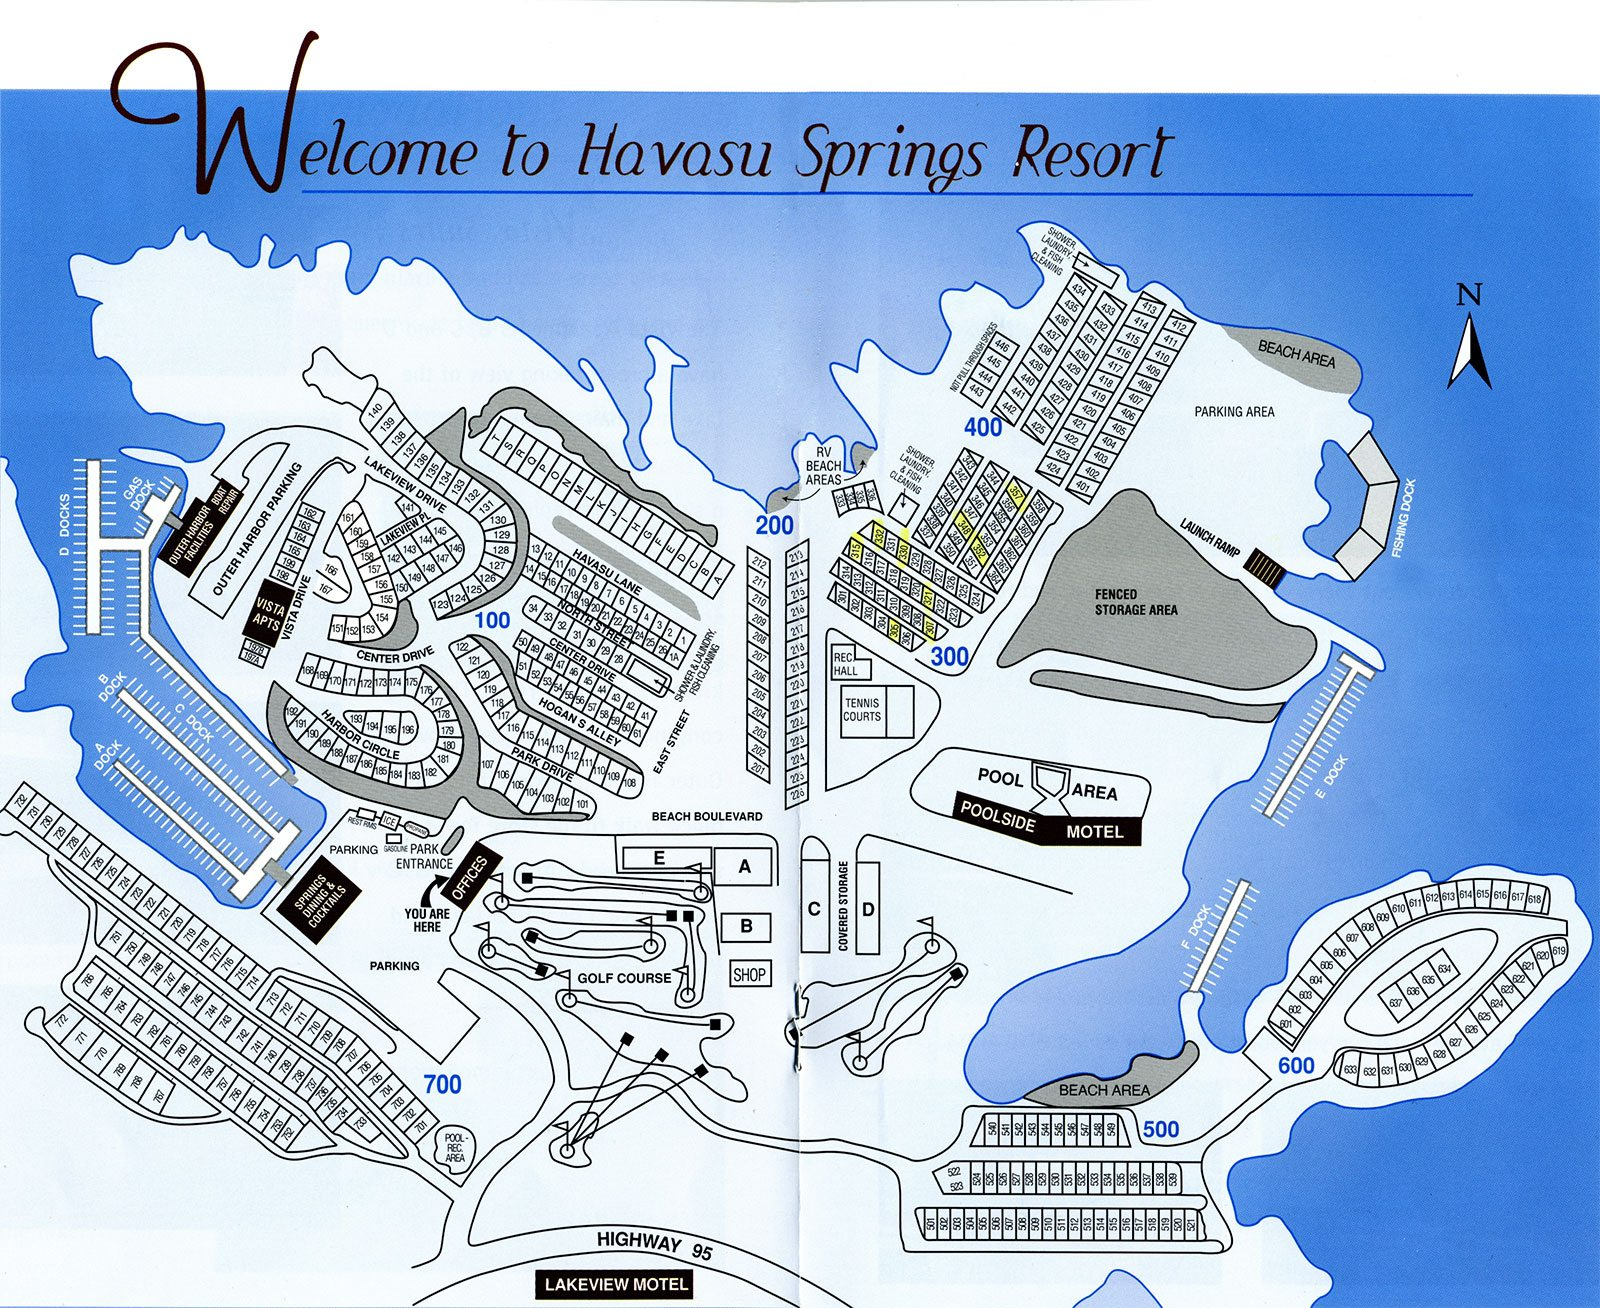 Havasu Springs Park Map - Havasu Springs RV Resort on map of az casinos, map of az hospitals, alamo lake az rv parks, map of az cities, map of az camping, map of az airports,